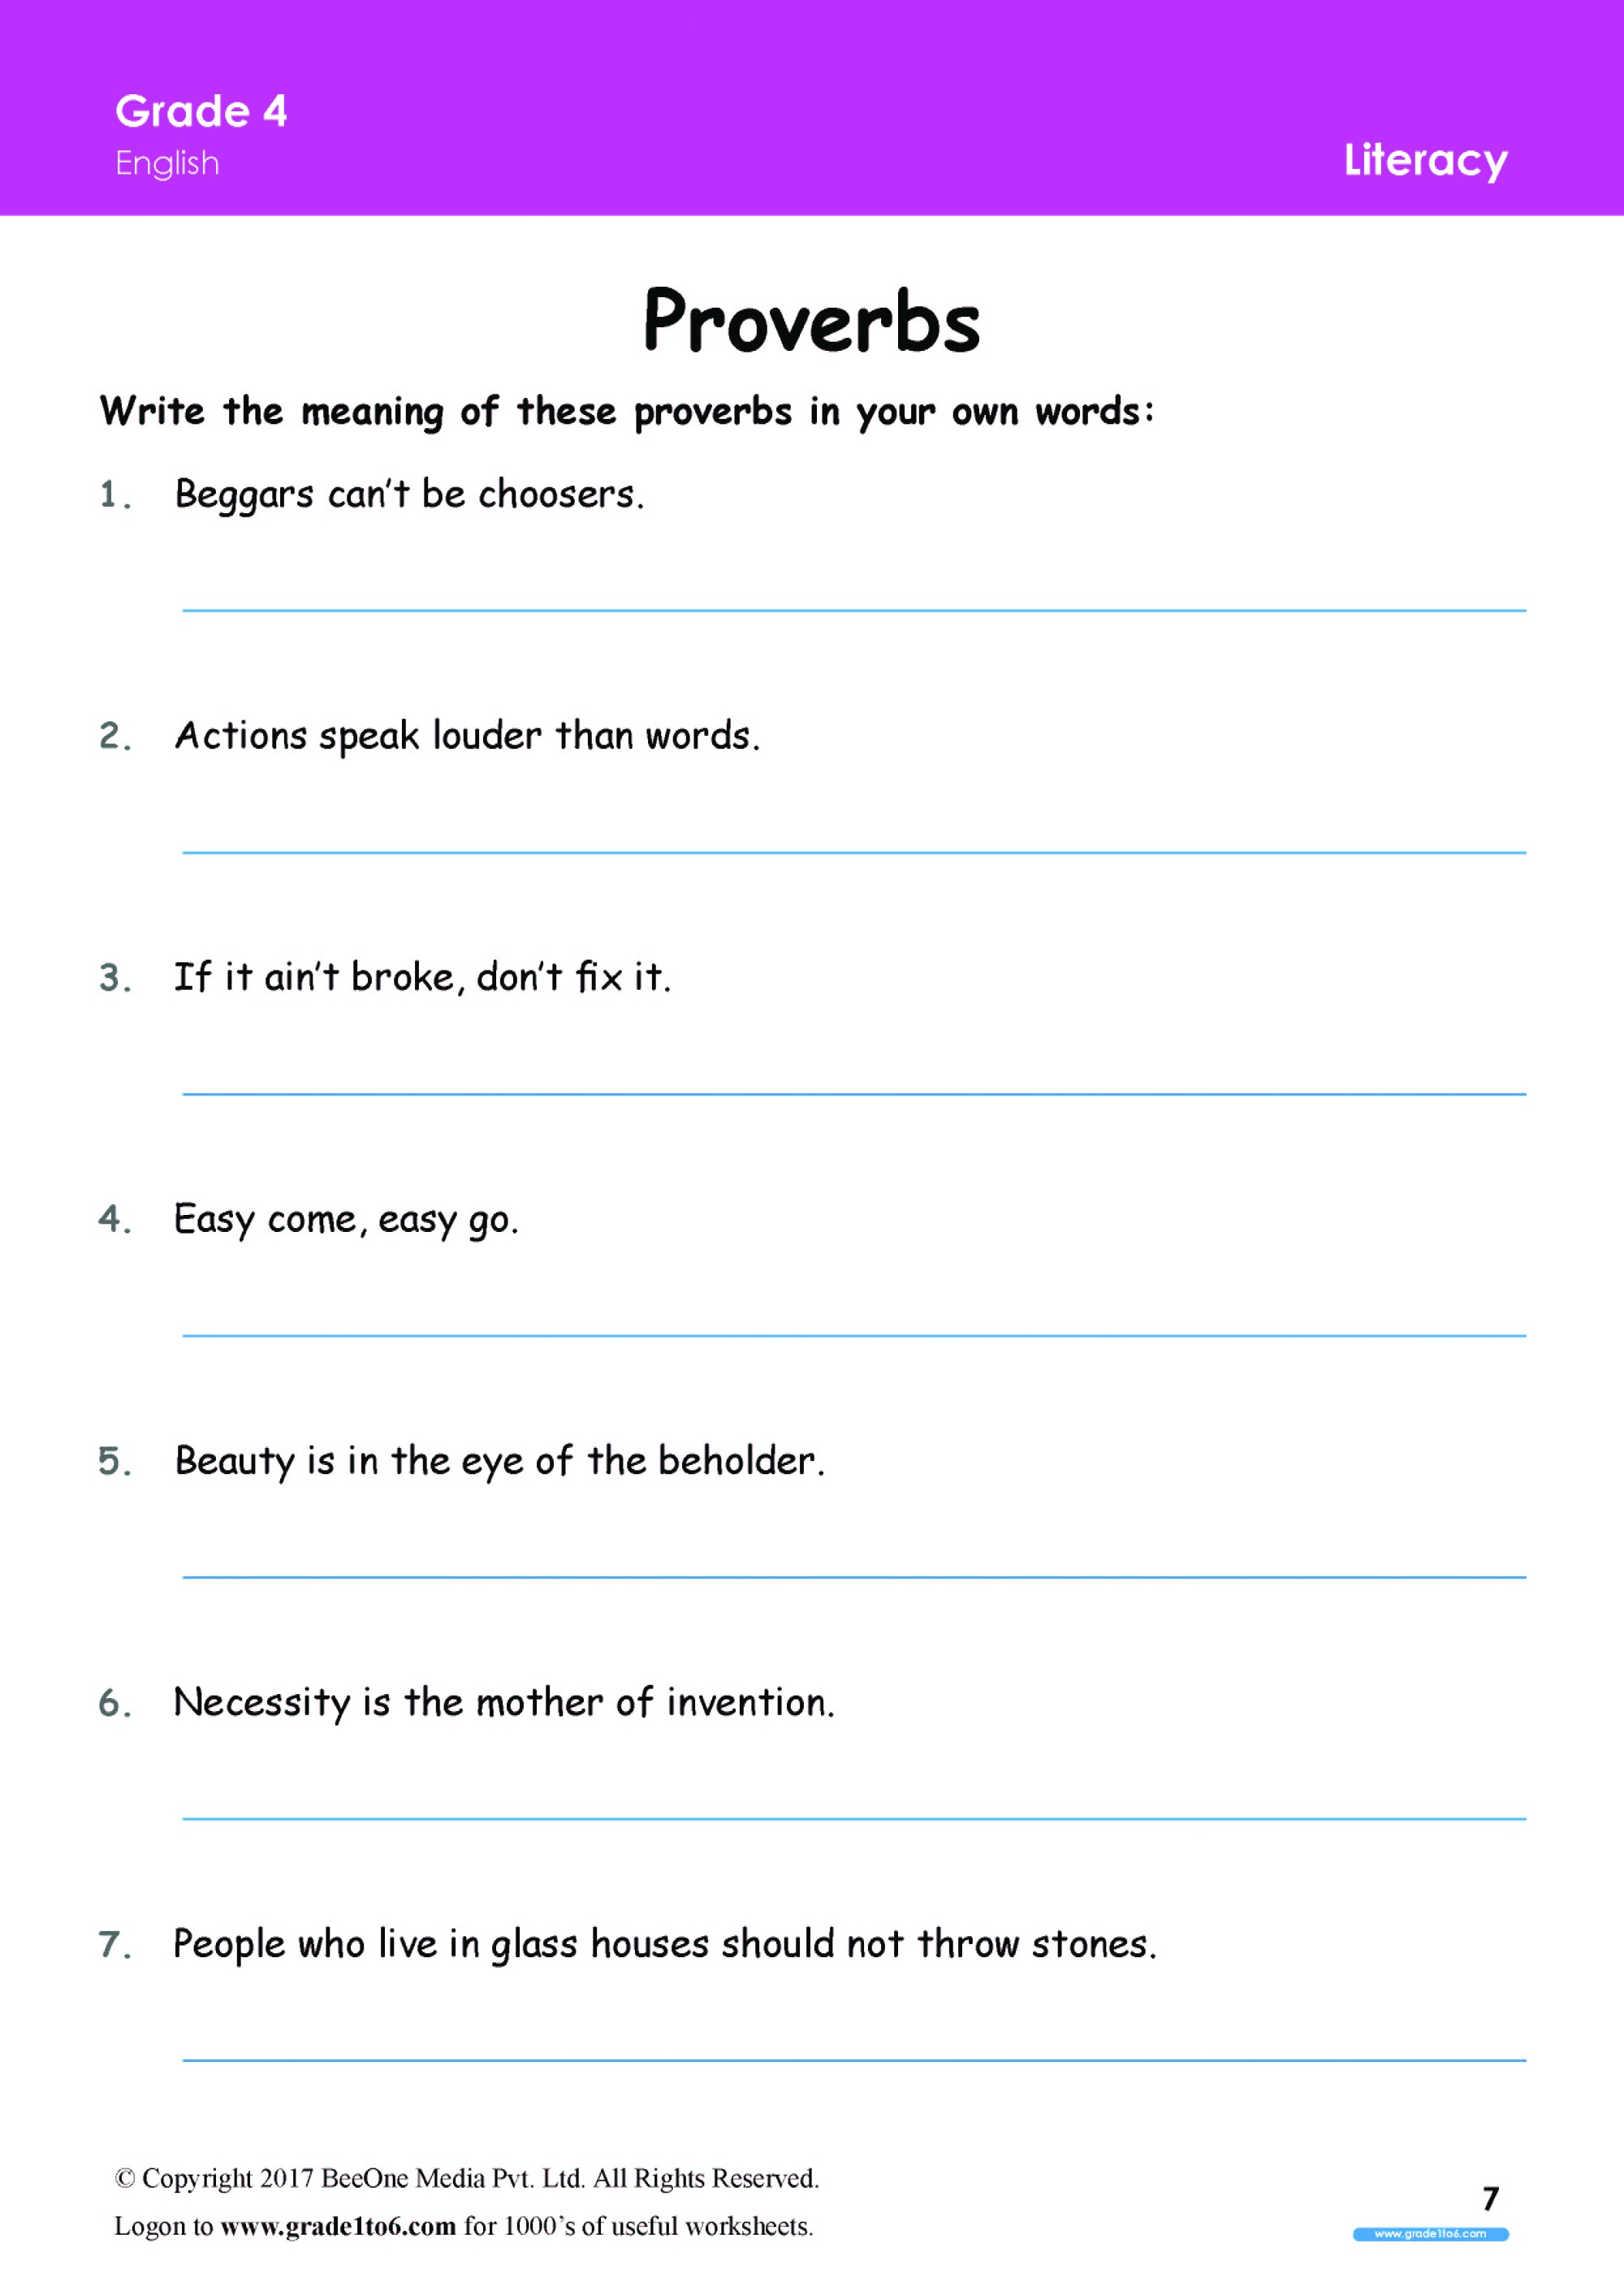 hight resolution of Proverbs worksheets Grade 4 www.grade1to6.com